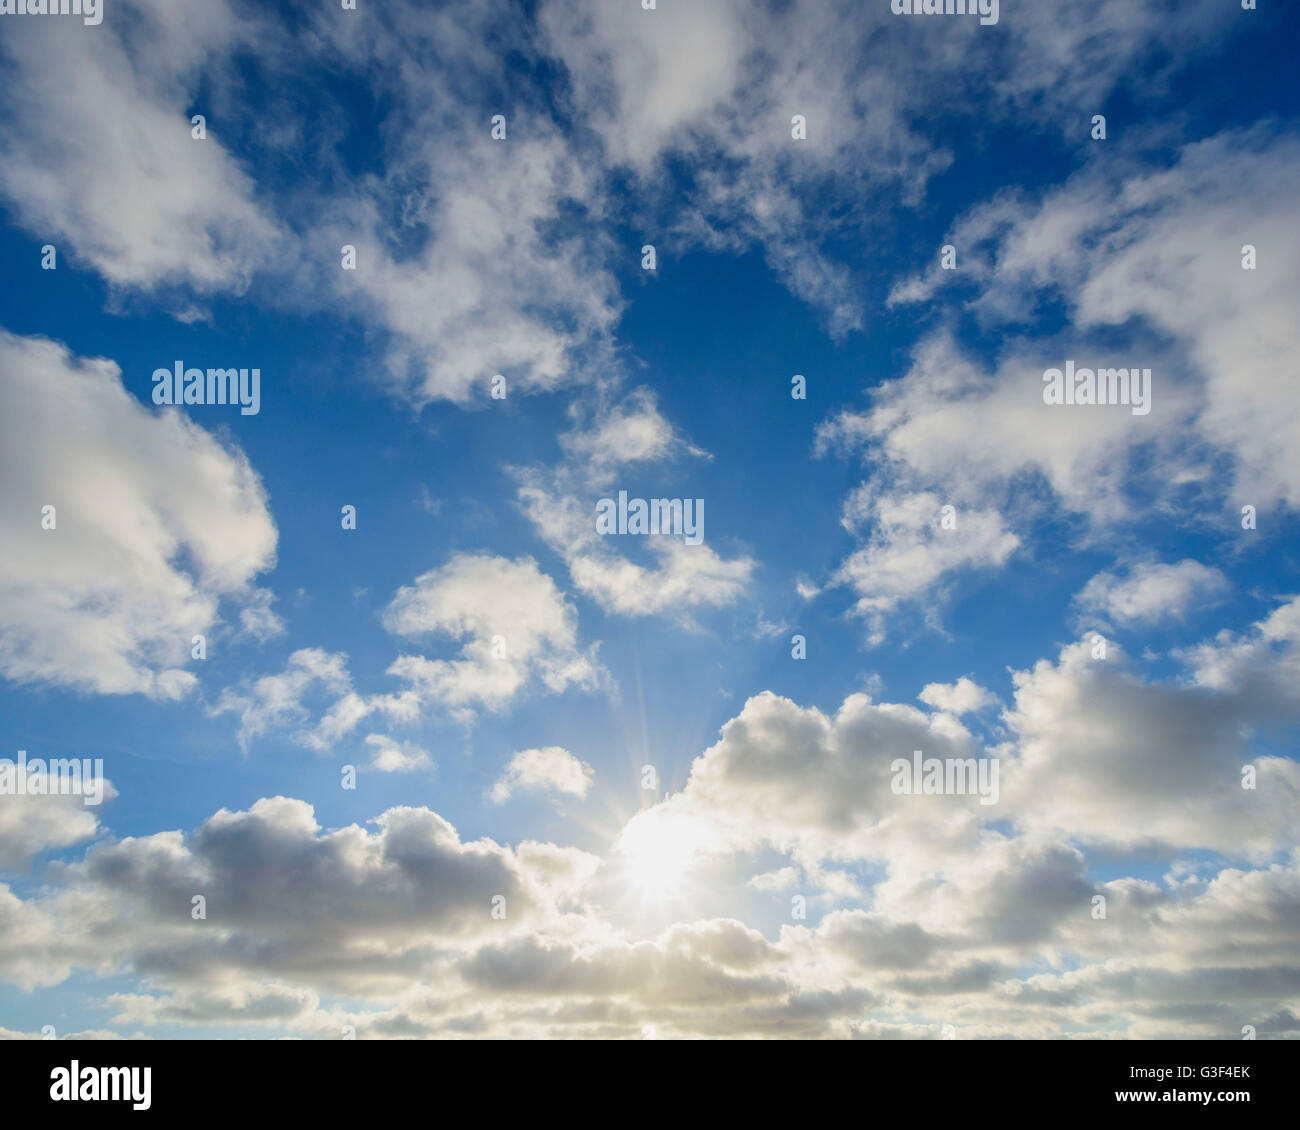 Sky with Clouds and Sun, Sealand Odde, Odsherred, Baltic Sea, Sealand, Denmark - Stock Image